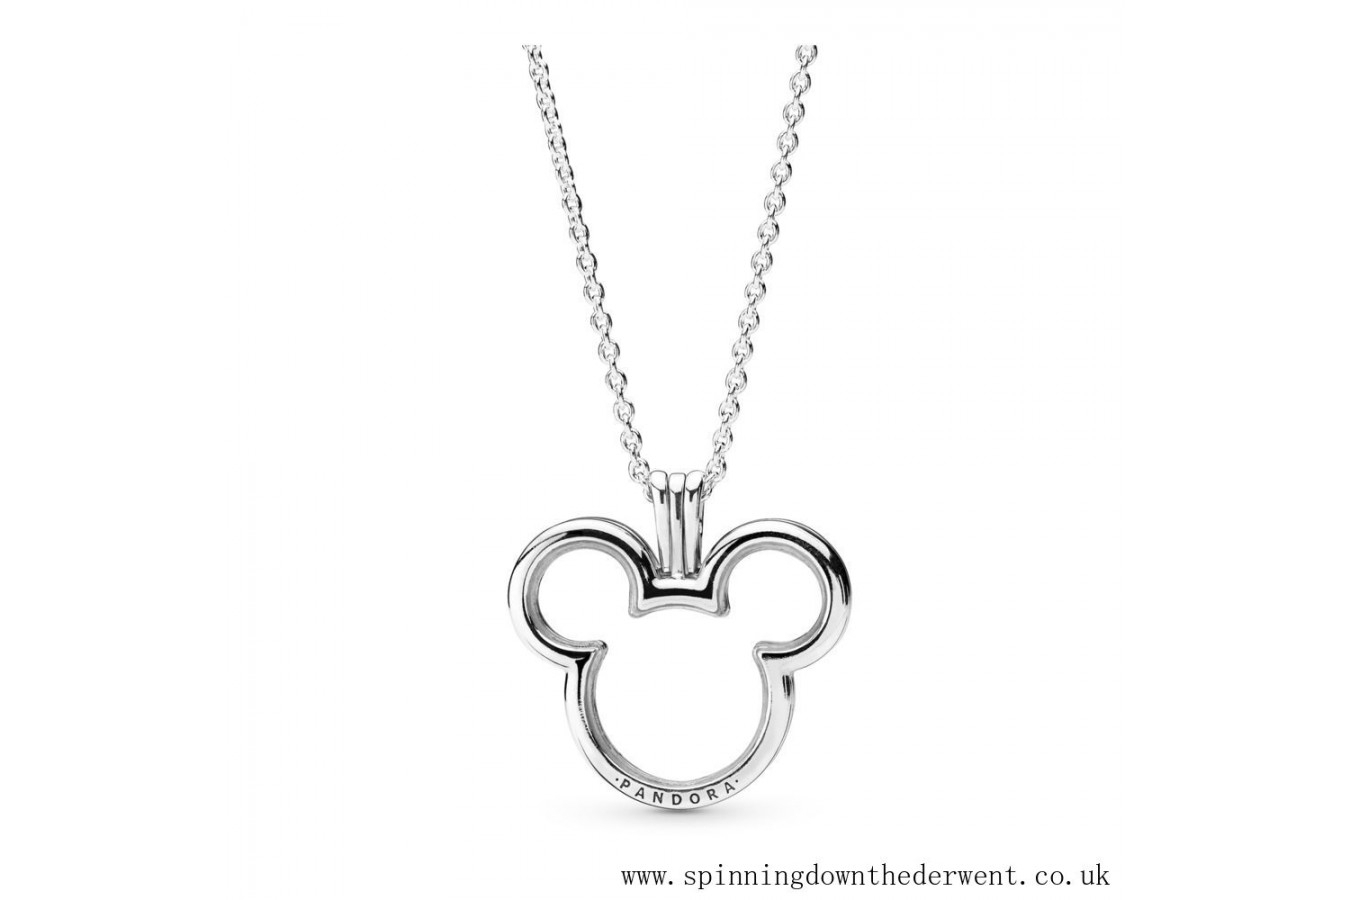 Pandora Disney, Mickey Floating Locket Necklace Sterling Silver, Glass In Latest Disney, Sparkling Minnie Icon Petite Locket Charm Necklaces (View 11 of 25)